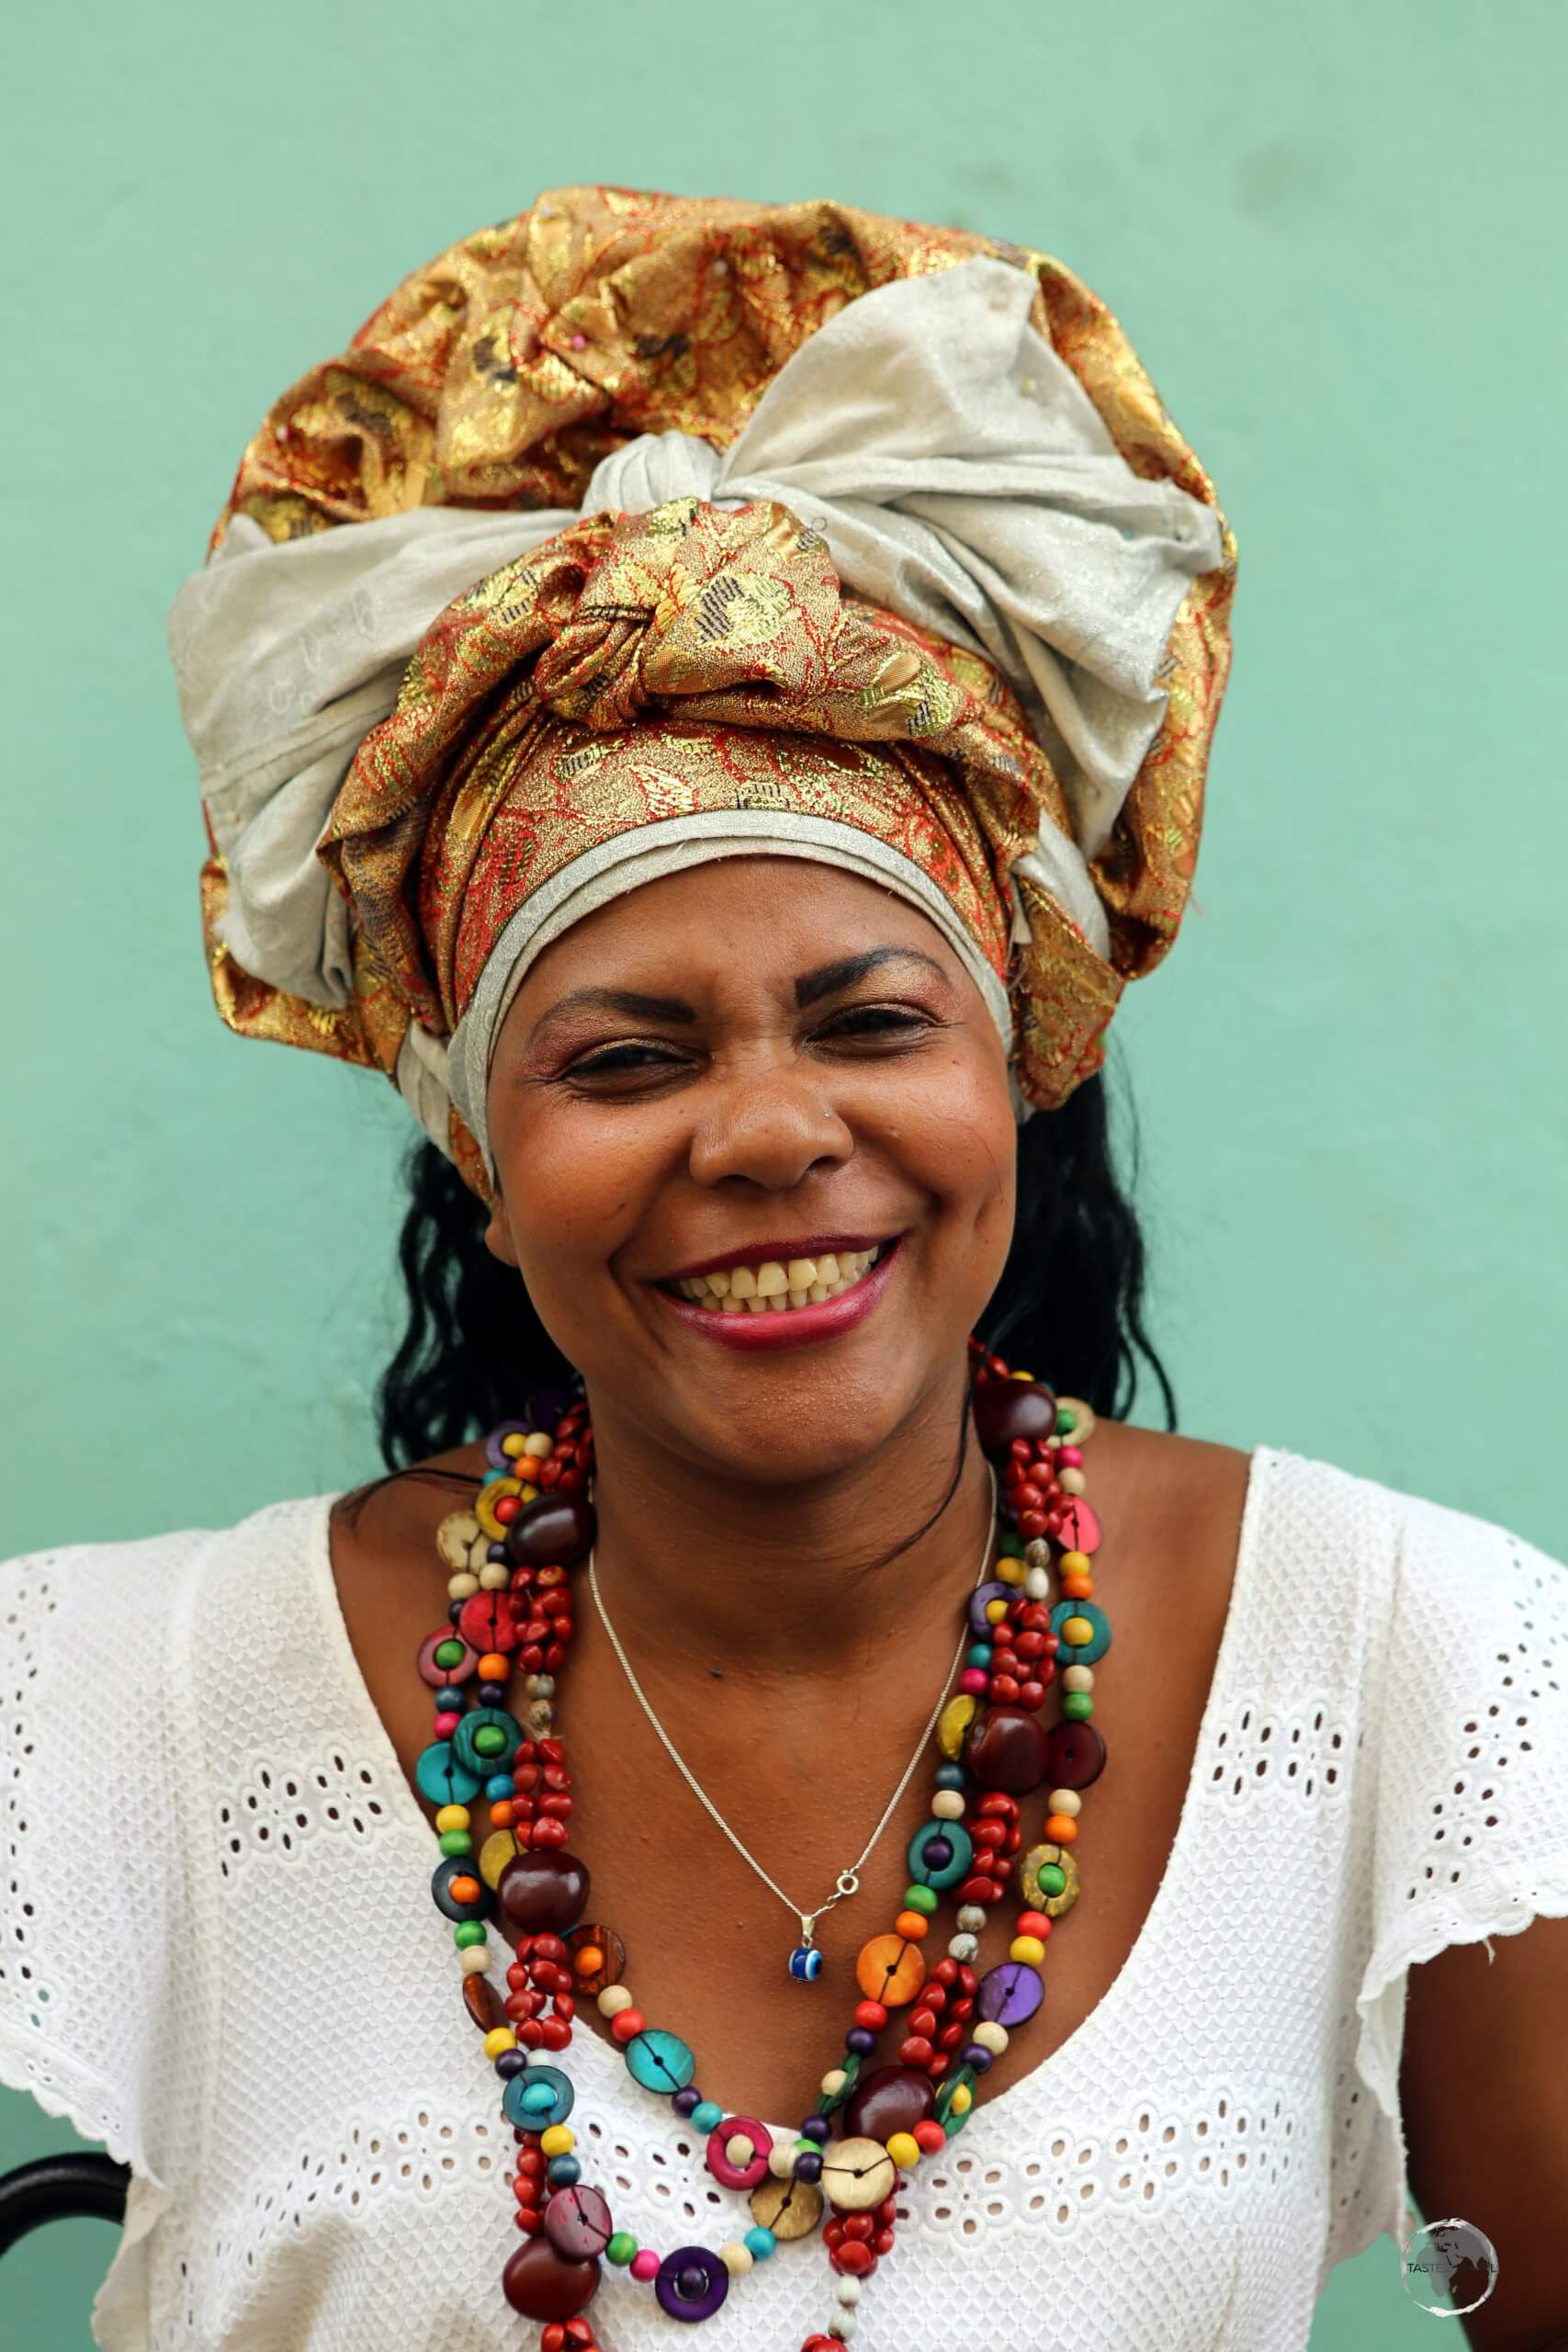 A friendly local in the old town of Salvador, the vibrant and colourful capital of Brazil's state of Bahia.